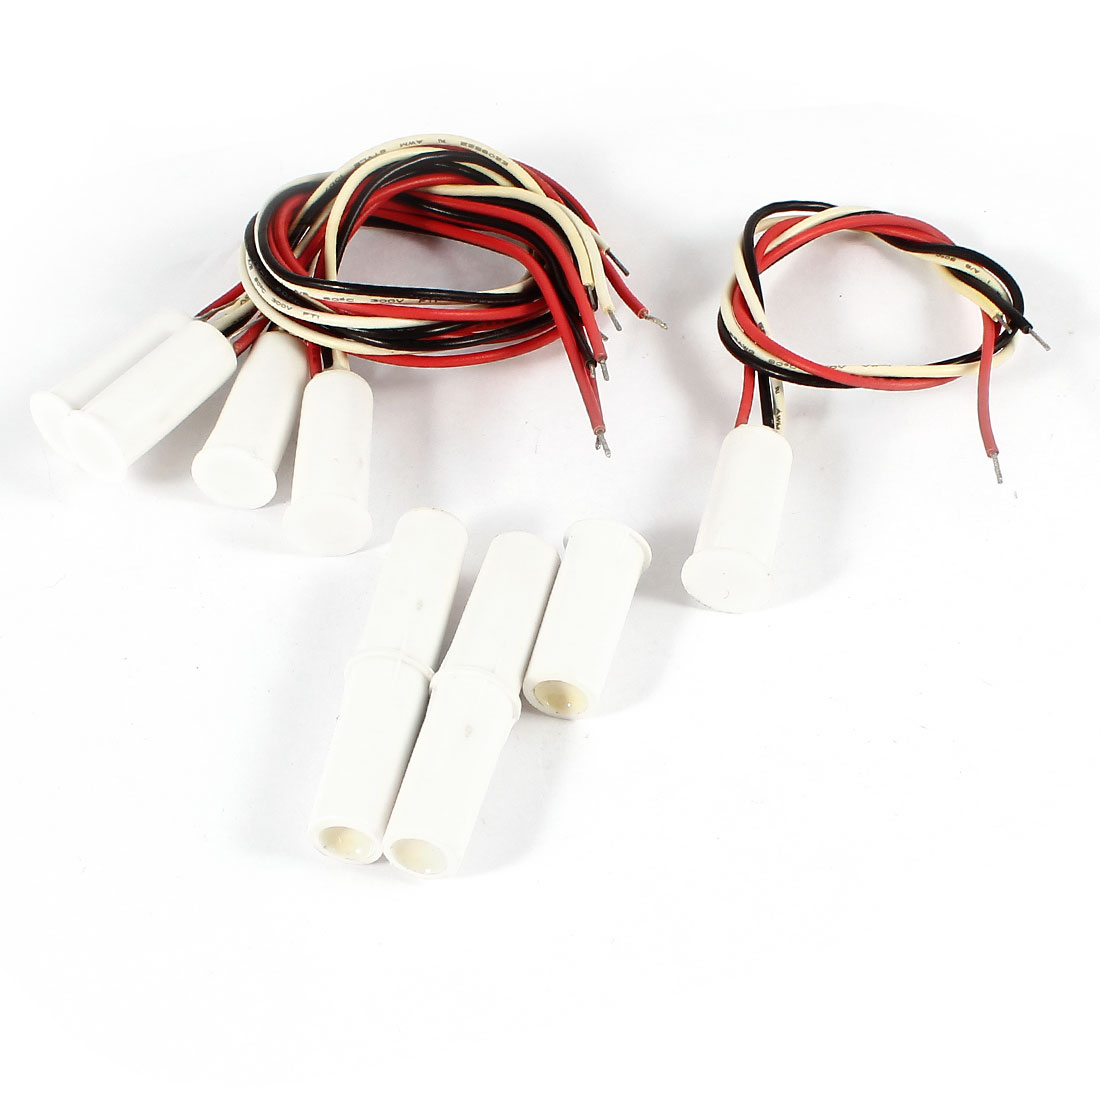 Normally Open Normally Closed Wired Magnetic Door Contact Sensor Switch 5 Pieces